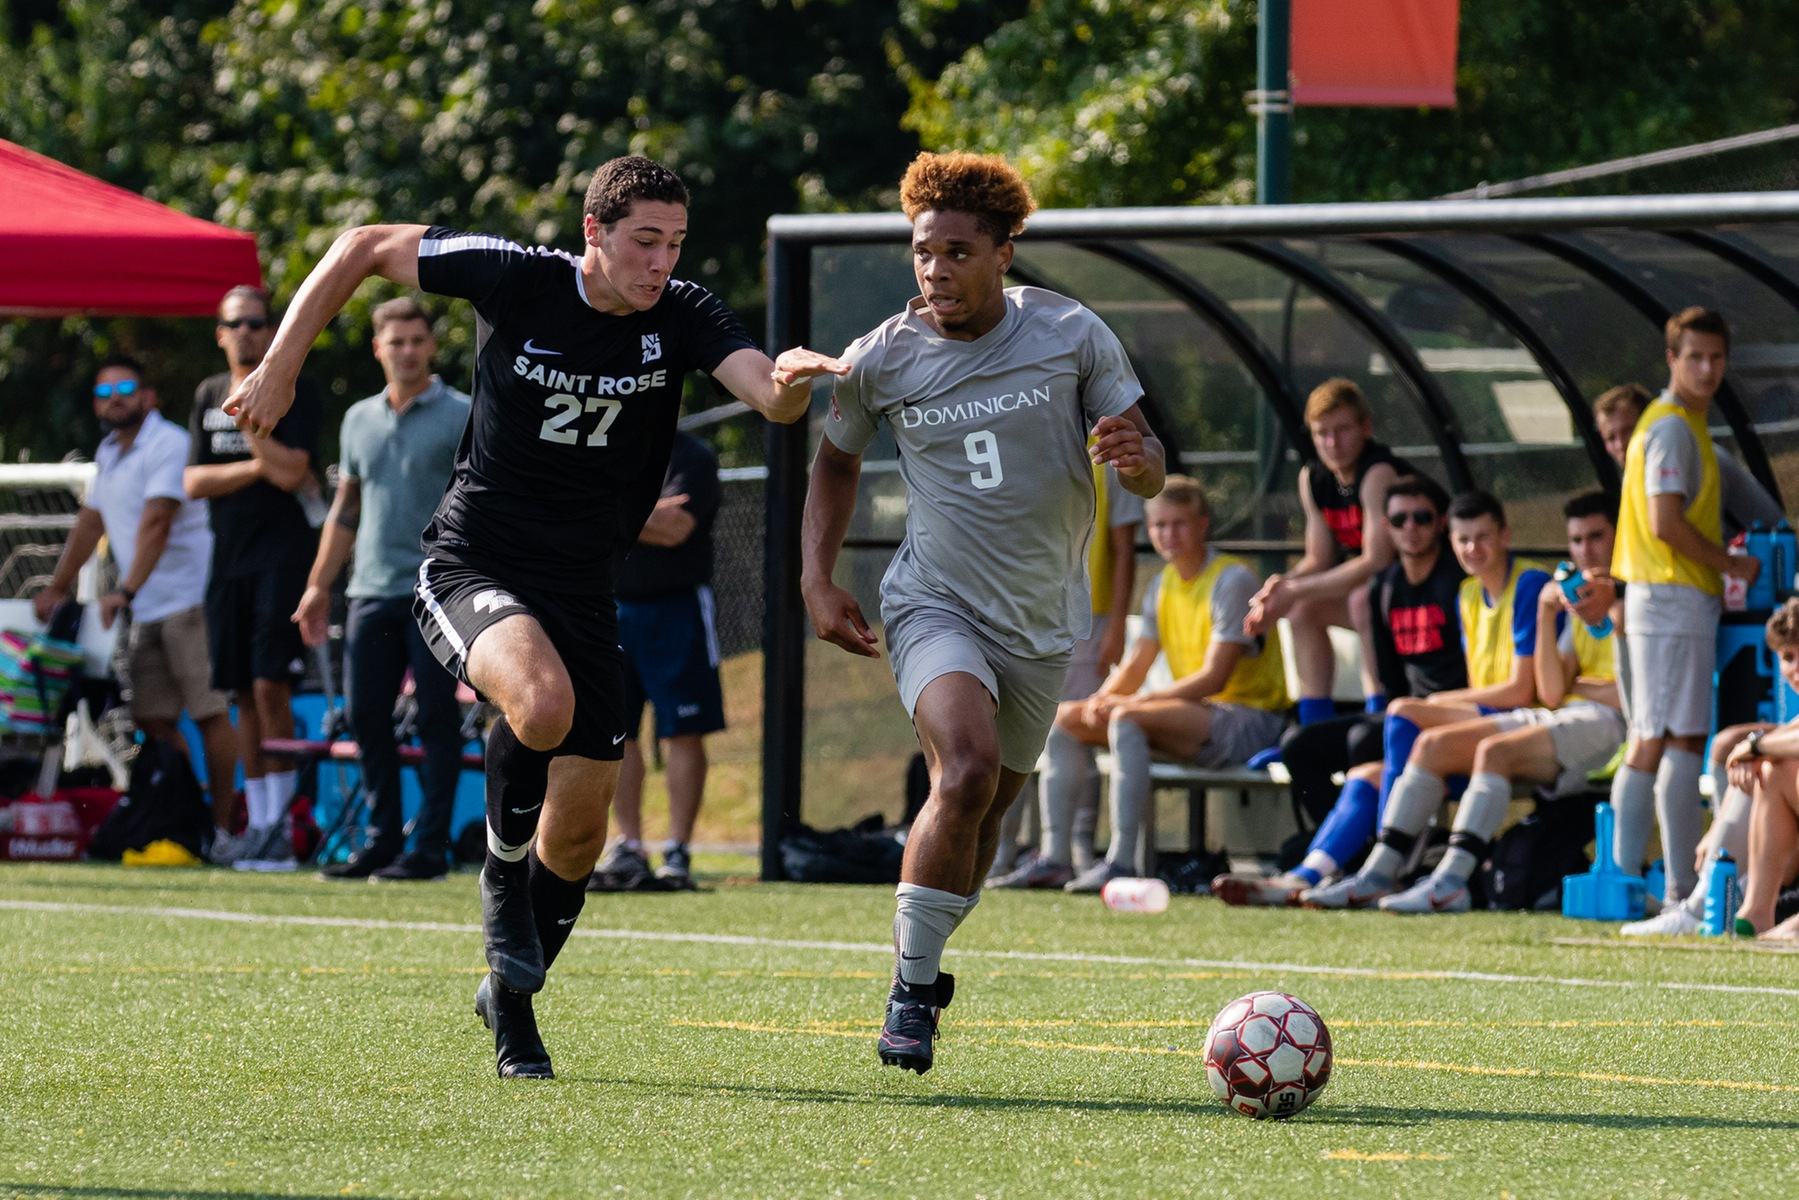 Jean Paul Lyons netted two goals to help lead the men's soccer team past Caldwell University.